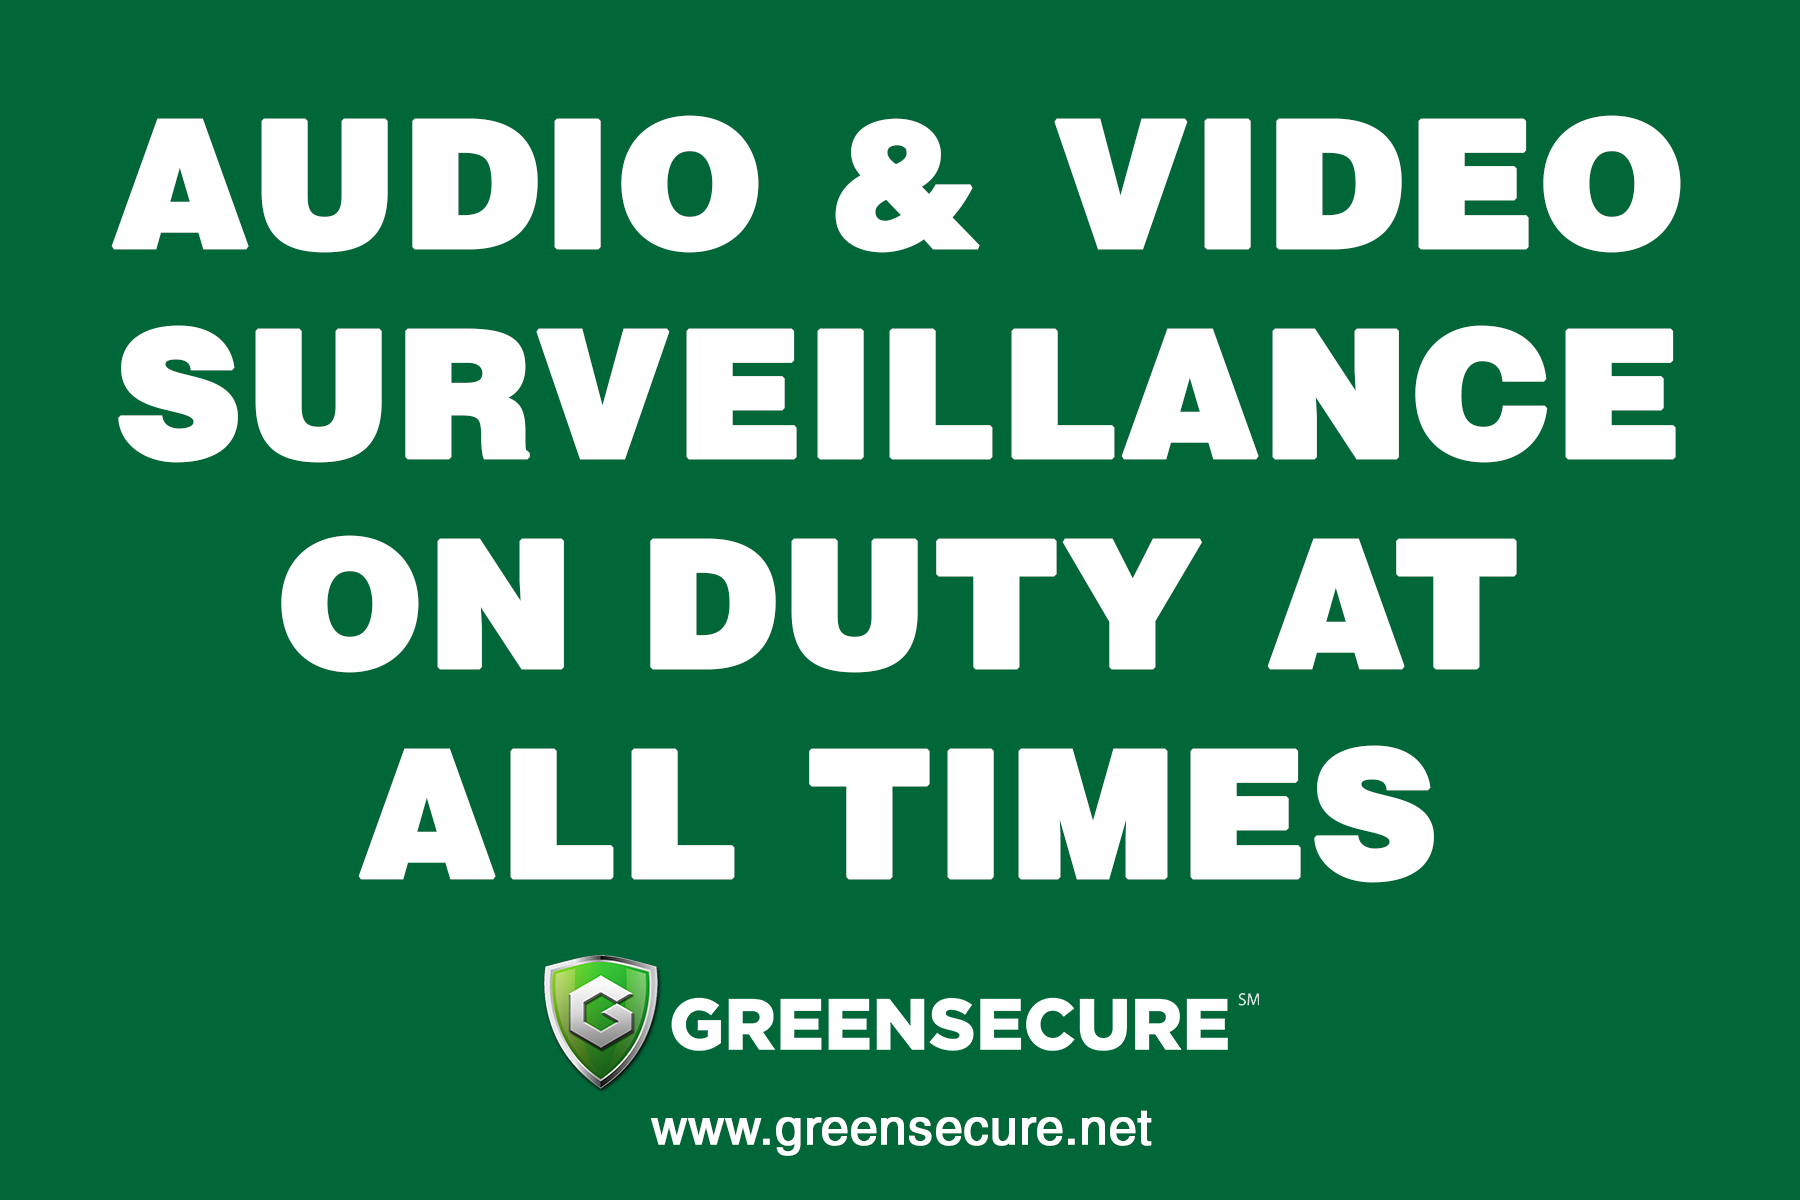 gw-greensecure-surveillance-notice-wide-002